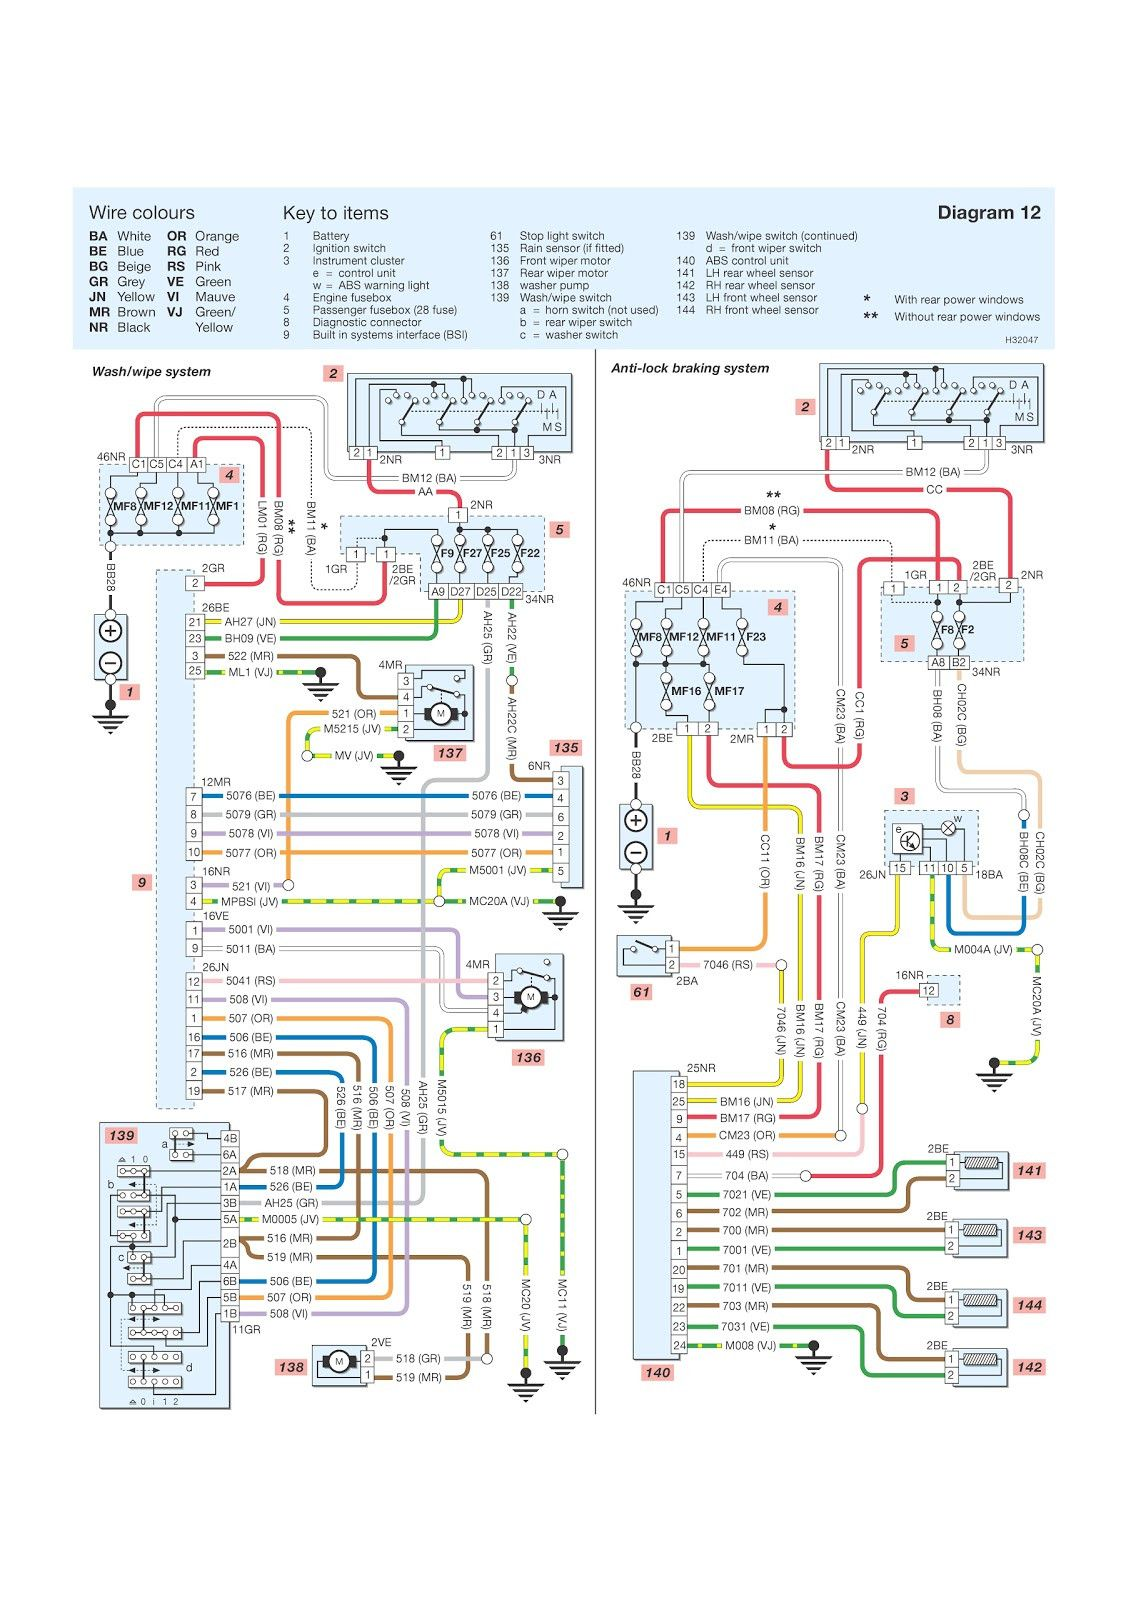 new peugeot 206 wiring diagram your diagrams source adorable peugeot 106 new peugeot 206 wiring diagram your diagrams source adorable